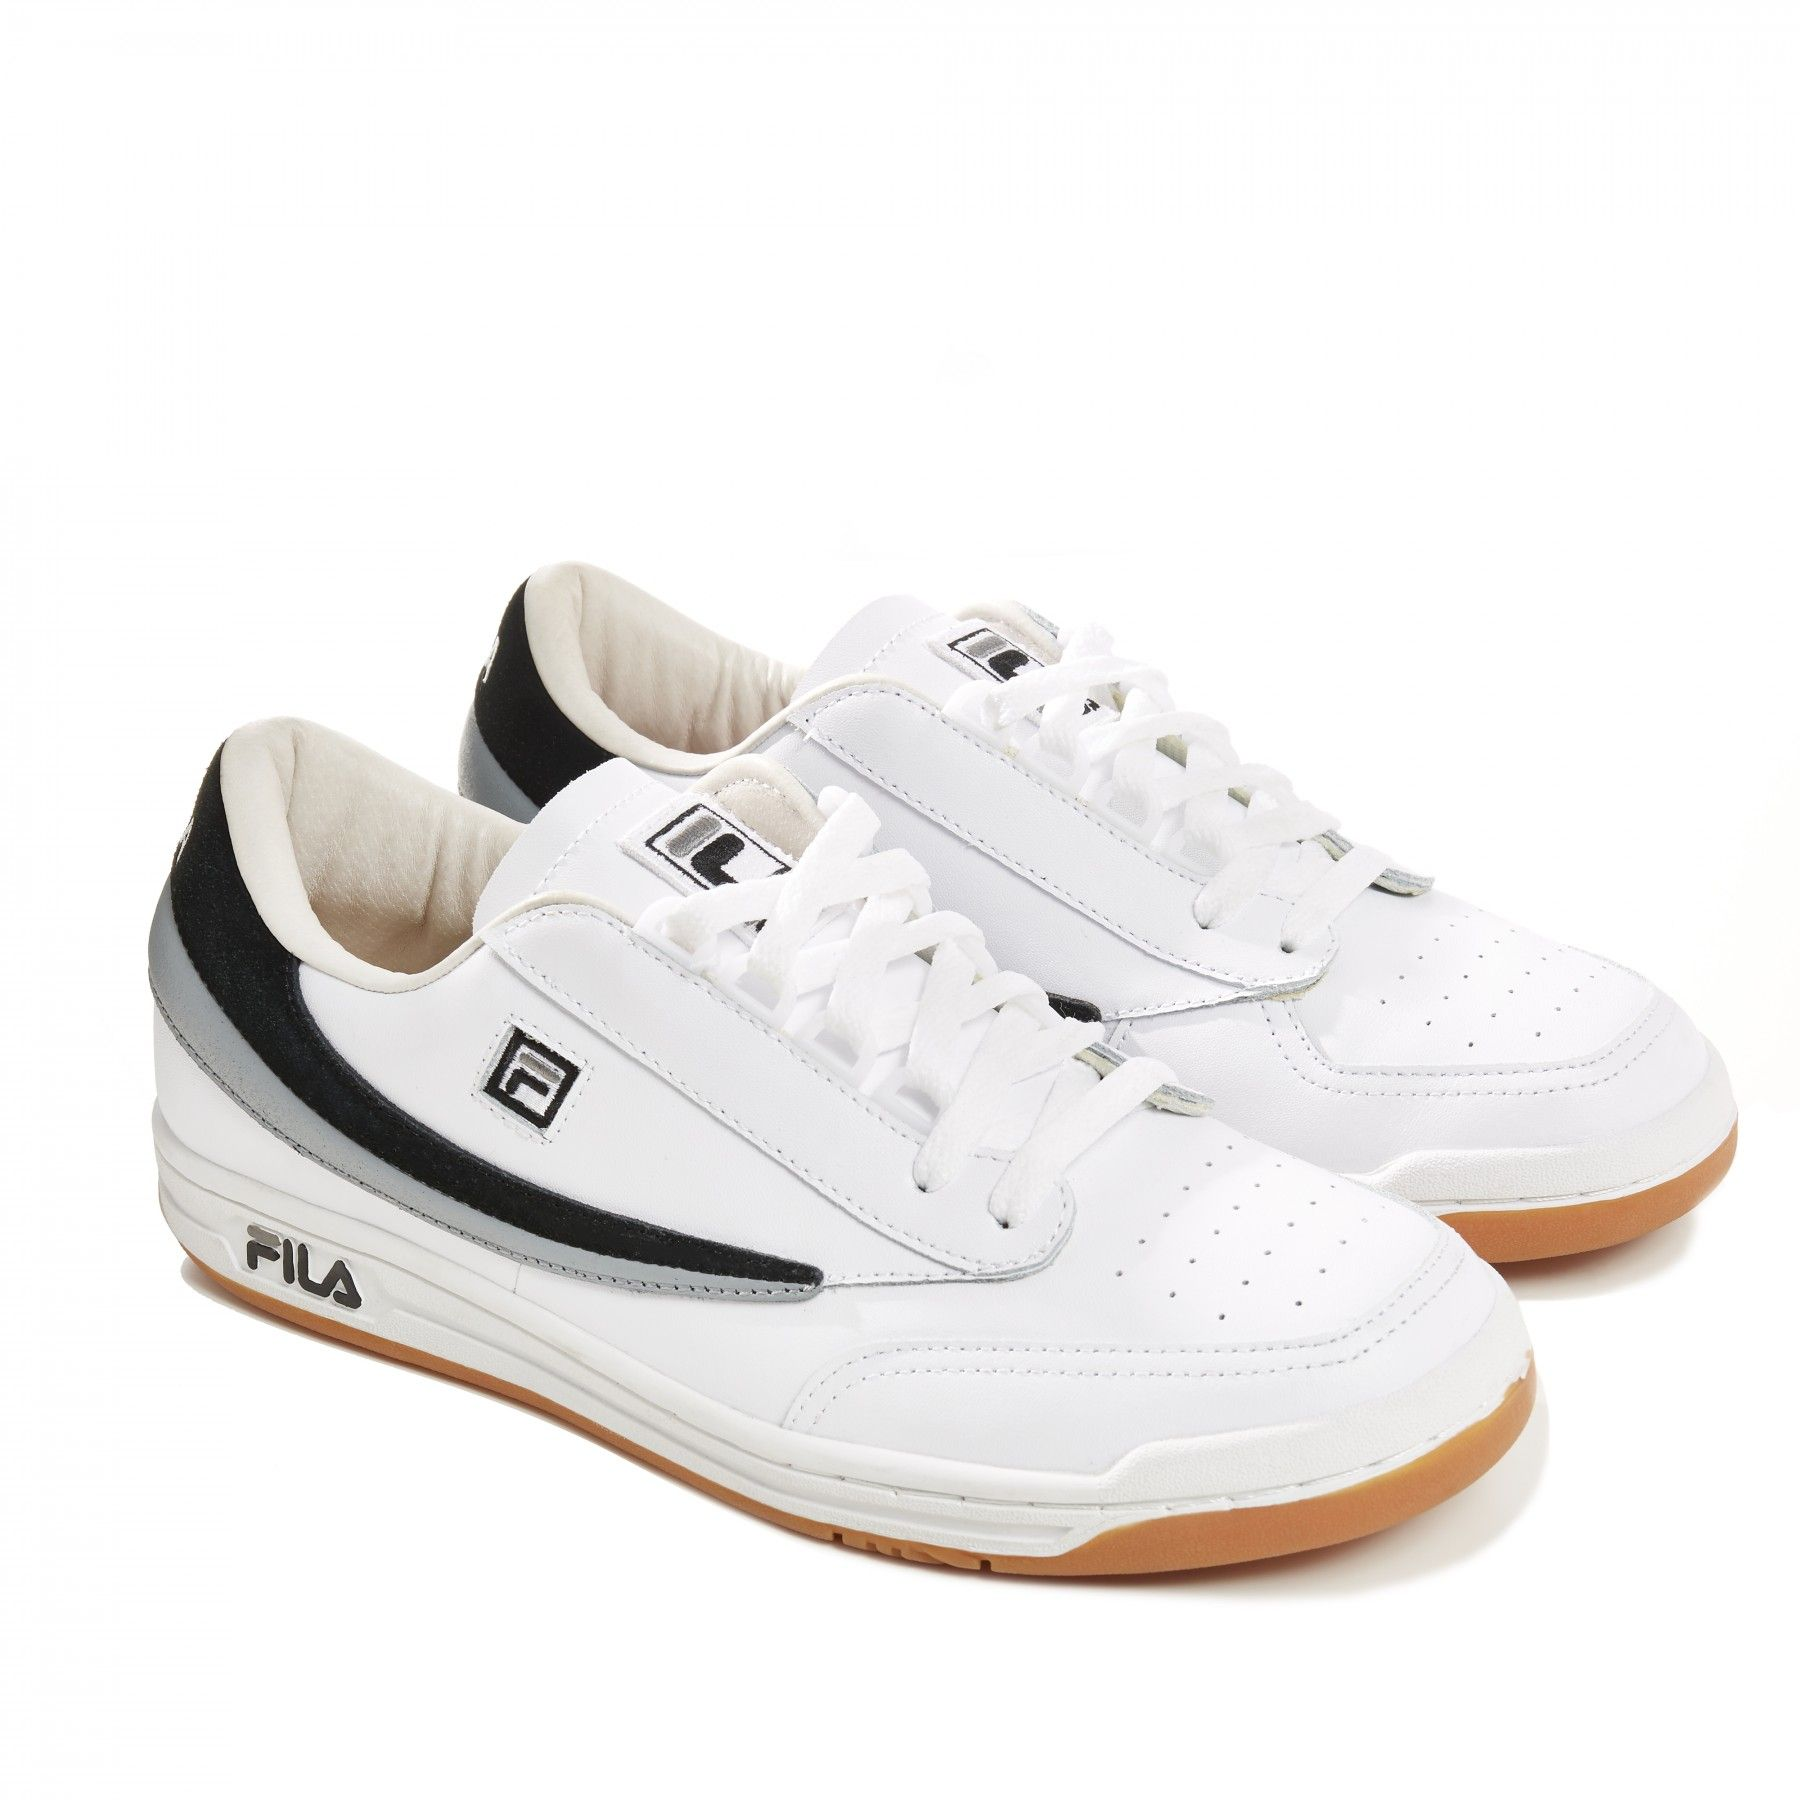 Fila Gosha Rubchinskiy Shoes